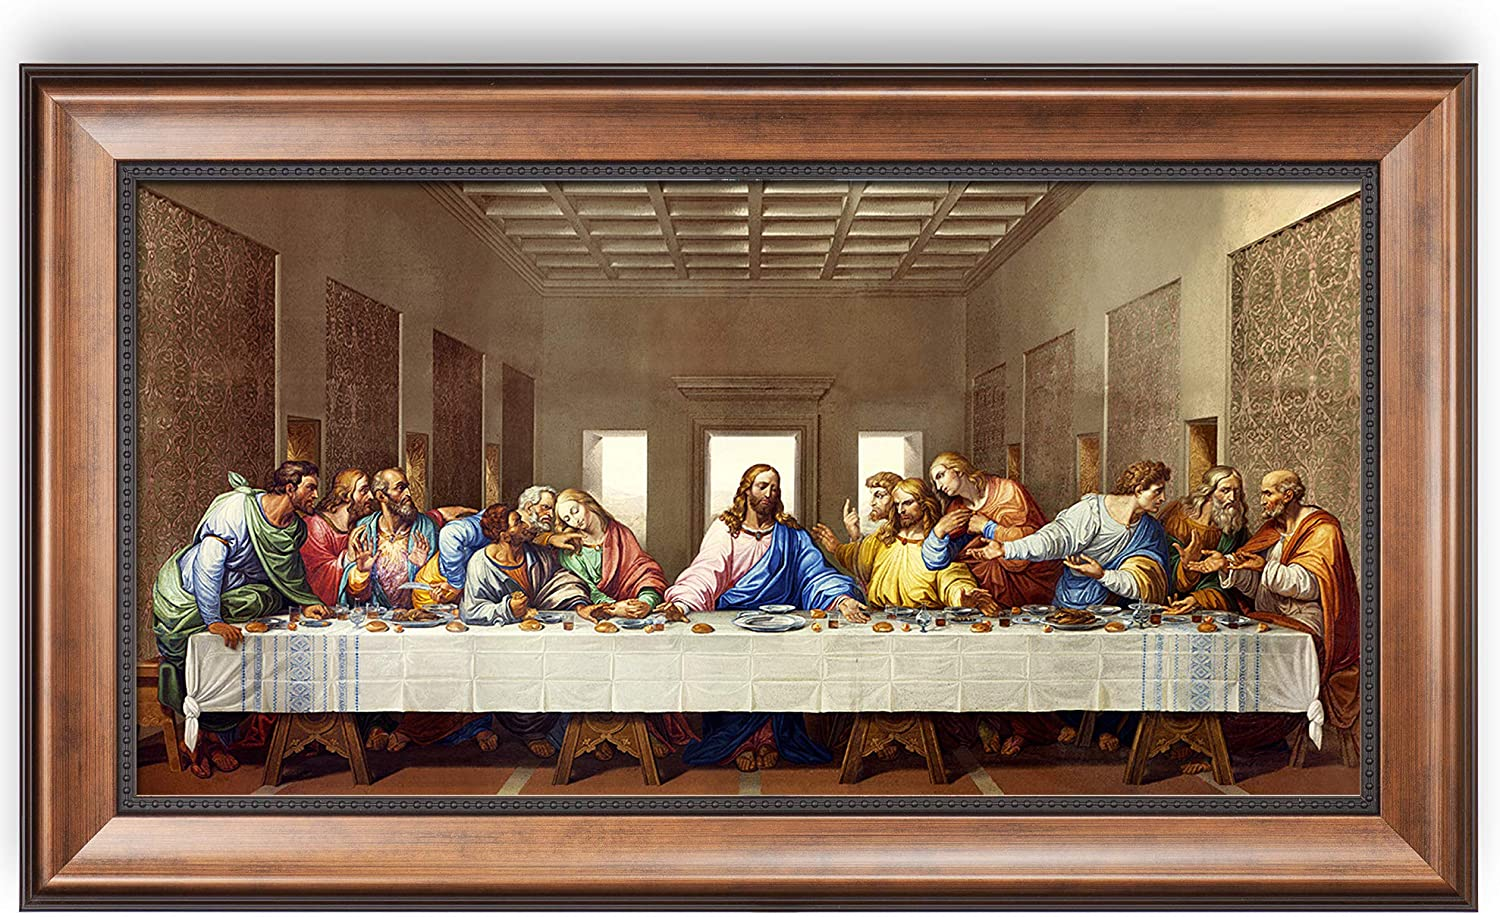 The Last Supper by Leonardo Da Vinci The World Classic Art Reproductions,Giclee Prints Framed WallArt for Home Decor,Image Size:24x12 inches,Bronze with Black lip Framed Size:27.75x15.75 inchs